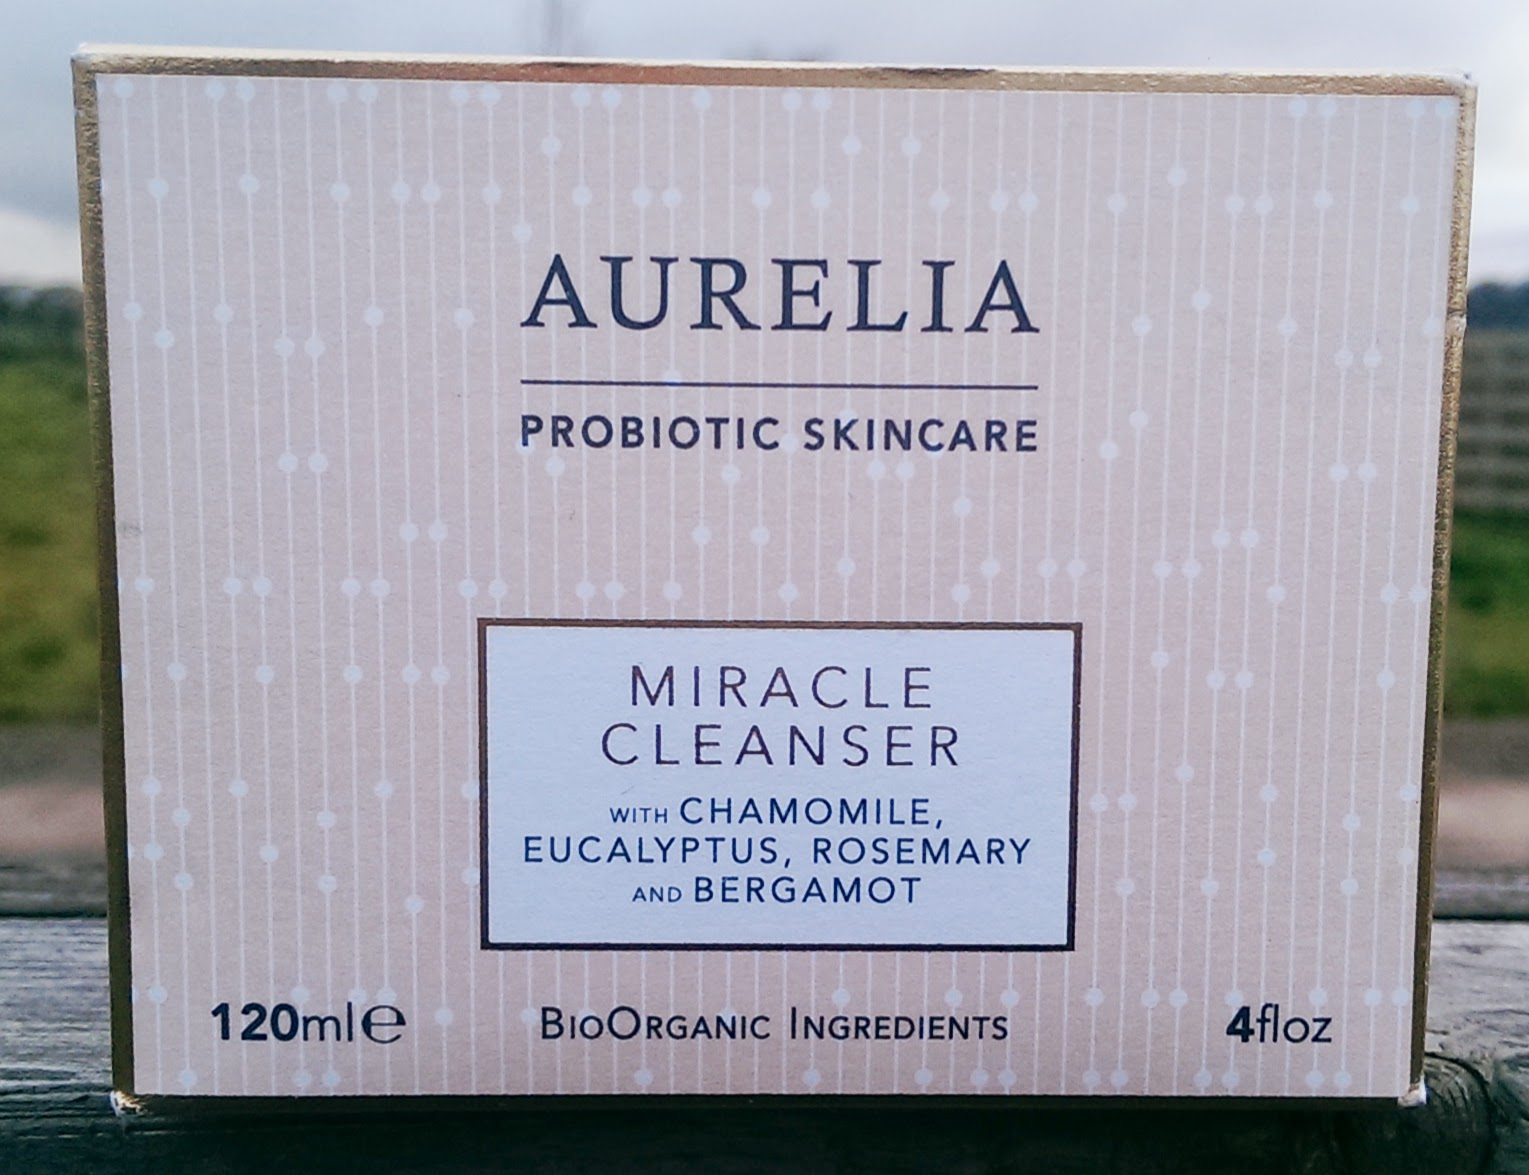 Miracle Cleanser by Aurelia Probiotic Skincare is reviewed by Fifi Friendly